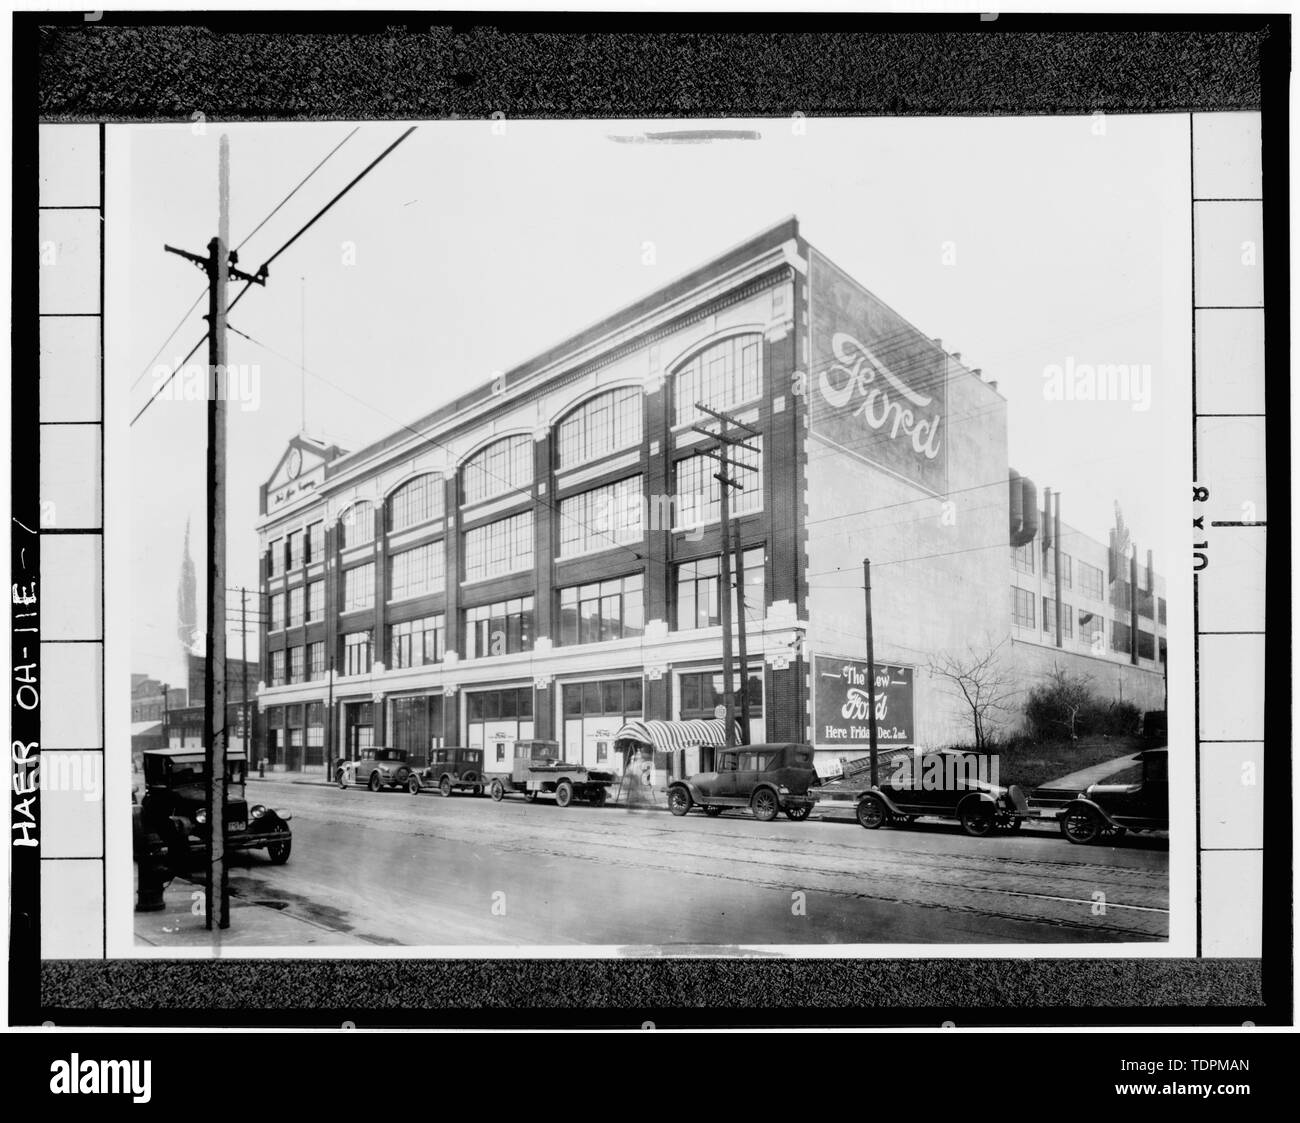 Photocpy of early 20th century photograph, looking east, of east facade of assembly building on Euclid Ave. Photo owned by the Cleveland Public Library. - Ford Motor Company, Cleveland Branch Assembly Plant, Euclid Avenue and East 116th Street, Cleveland, Cuyahoga County, OH - Stock Image